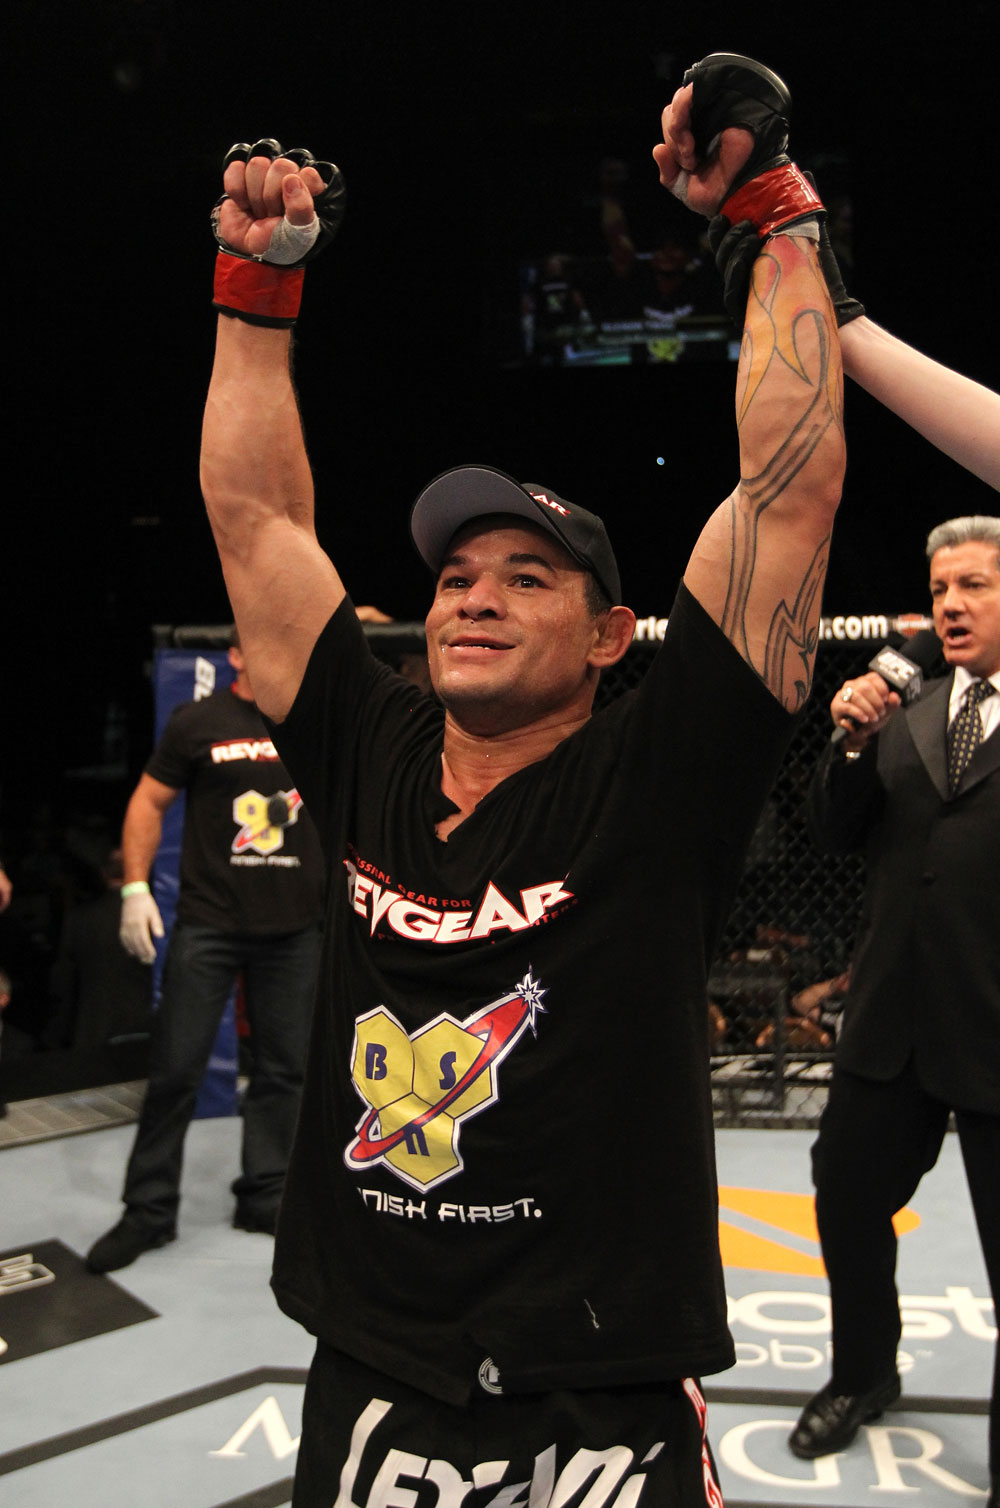 UFC 130: Gleison Tibau celebrates his win